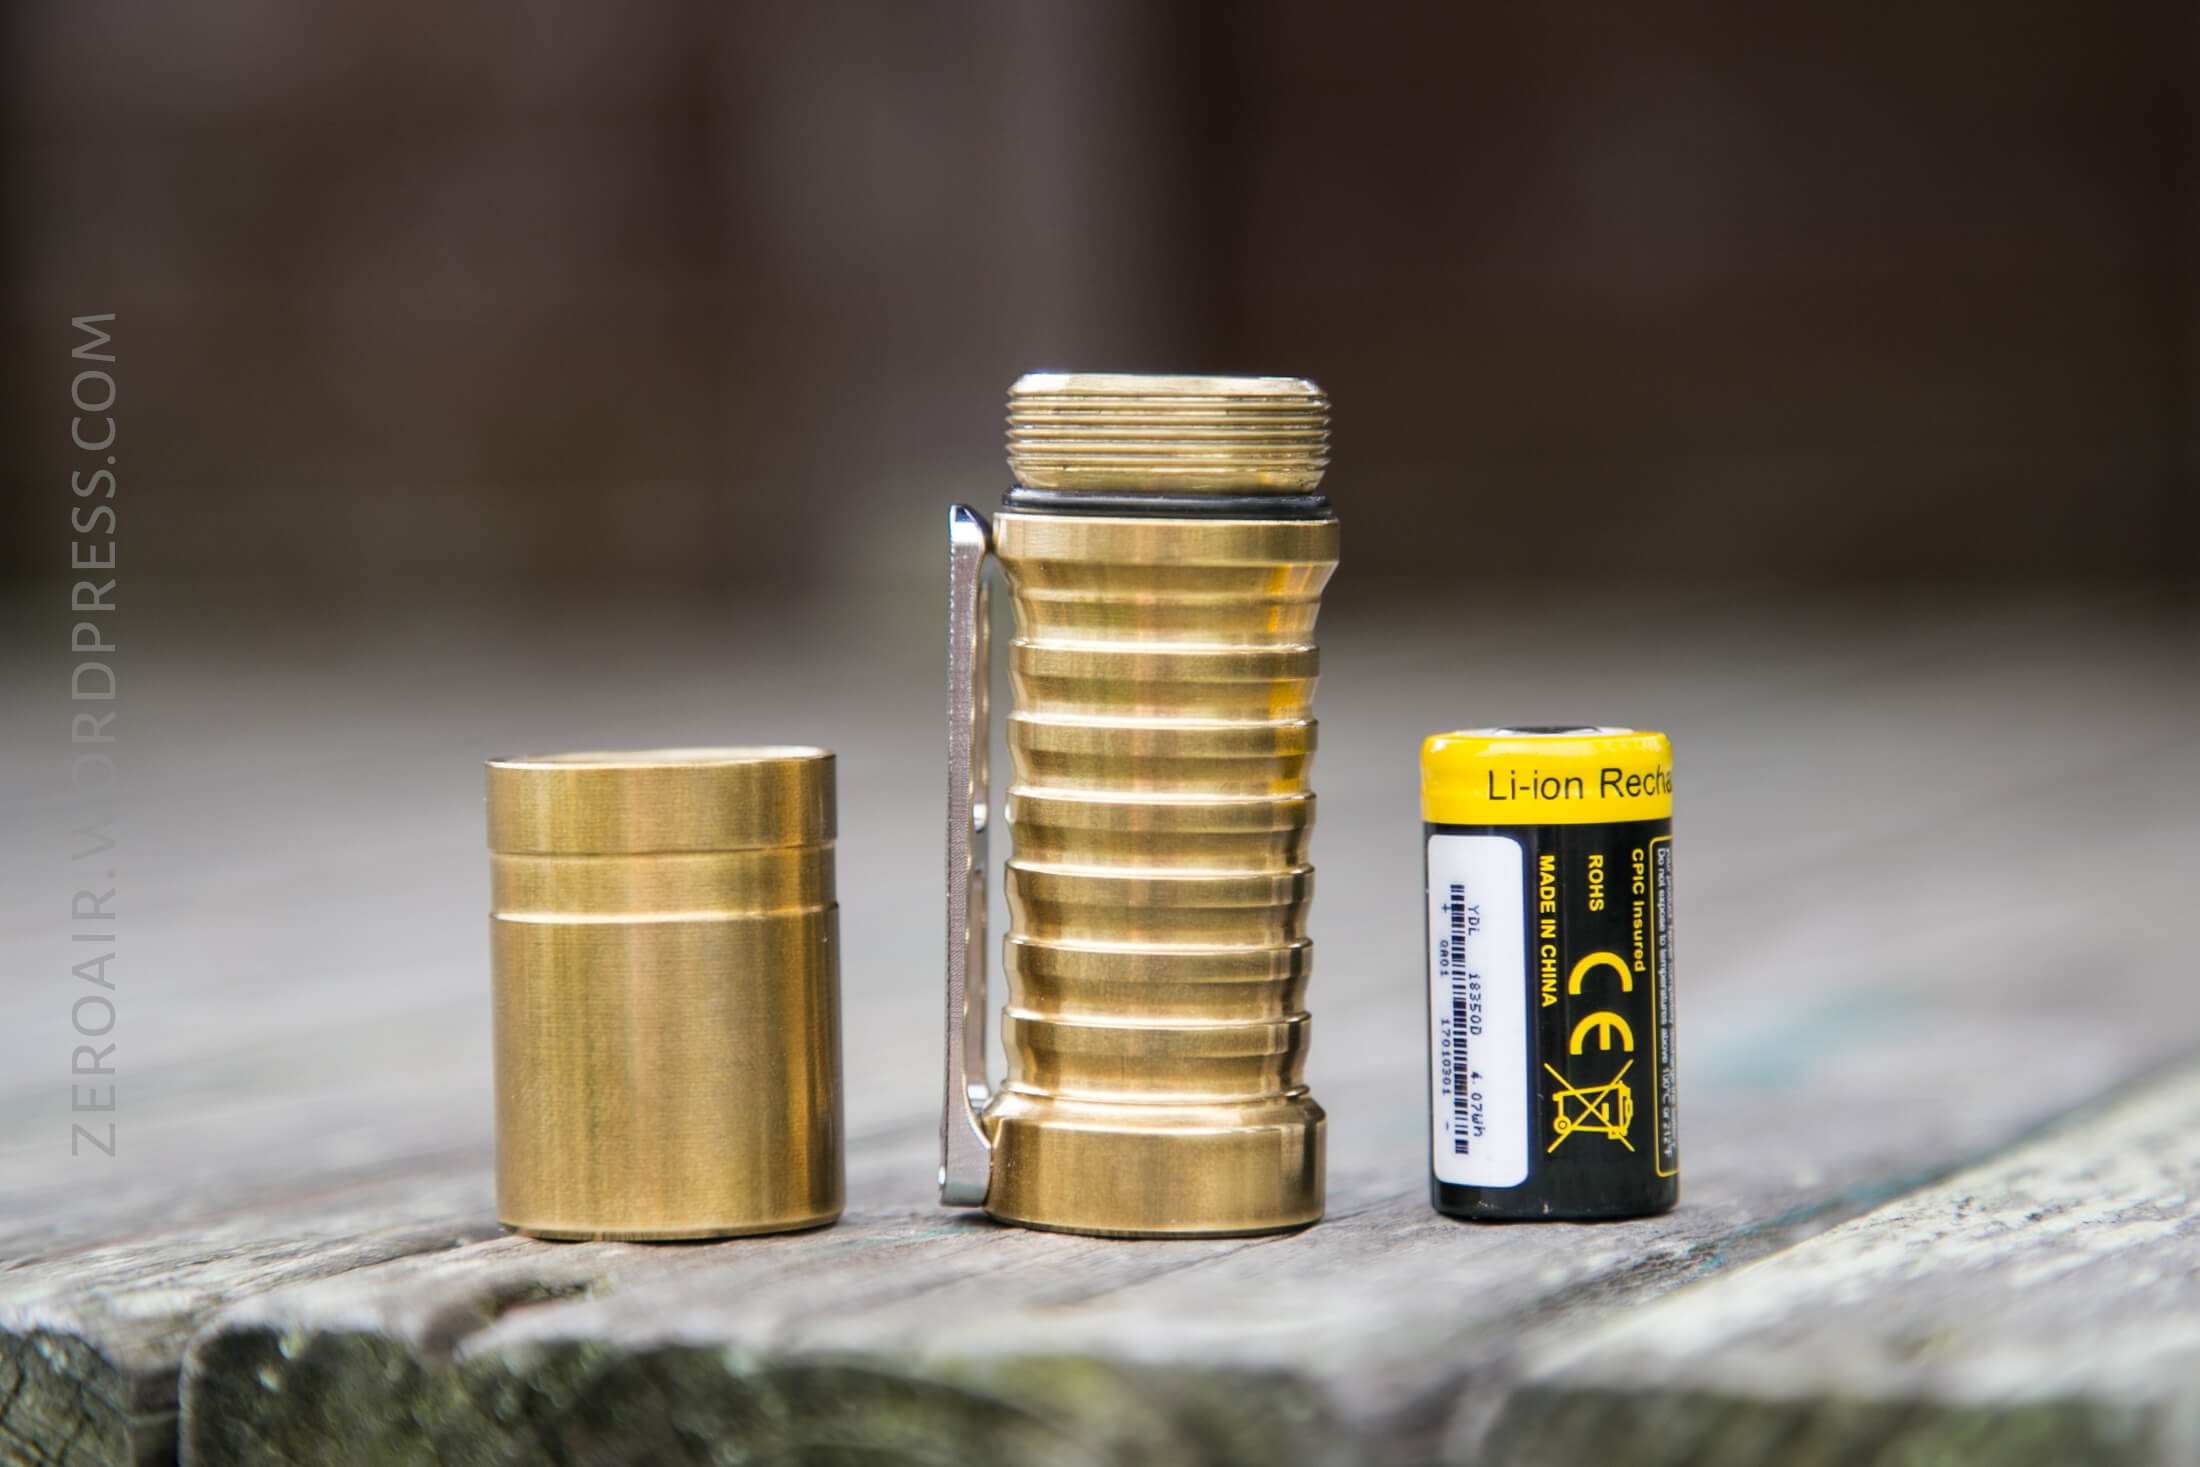 zeroair_reviews_venom_orion_brass_nichia_21.jpg